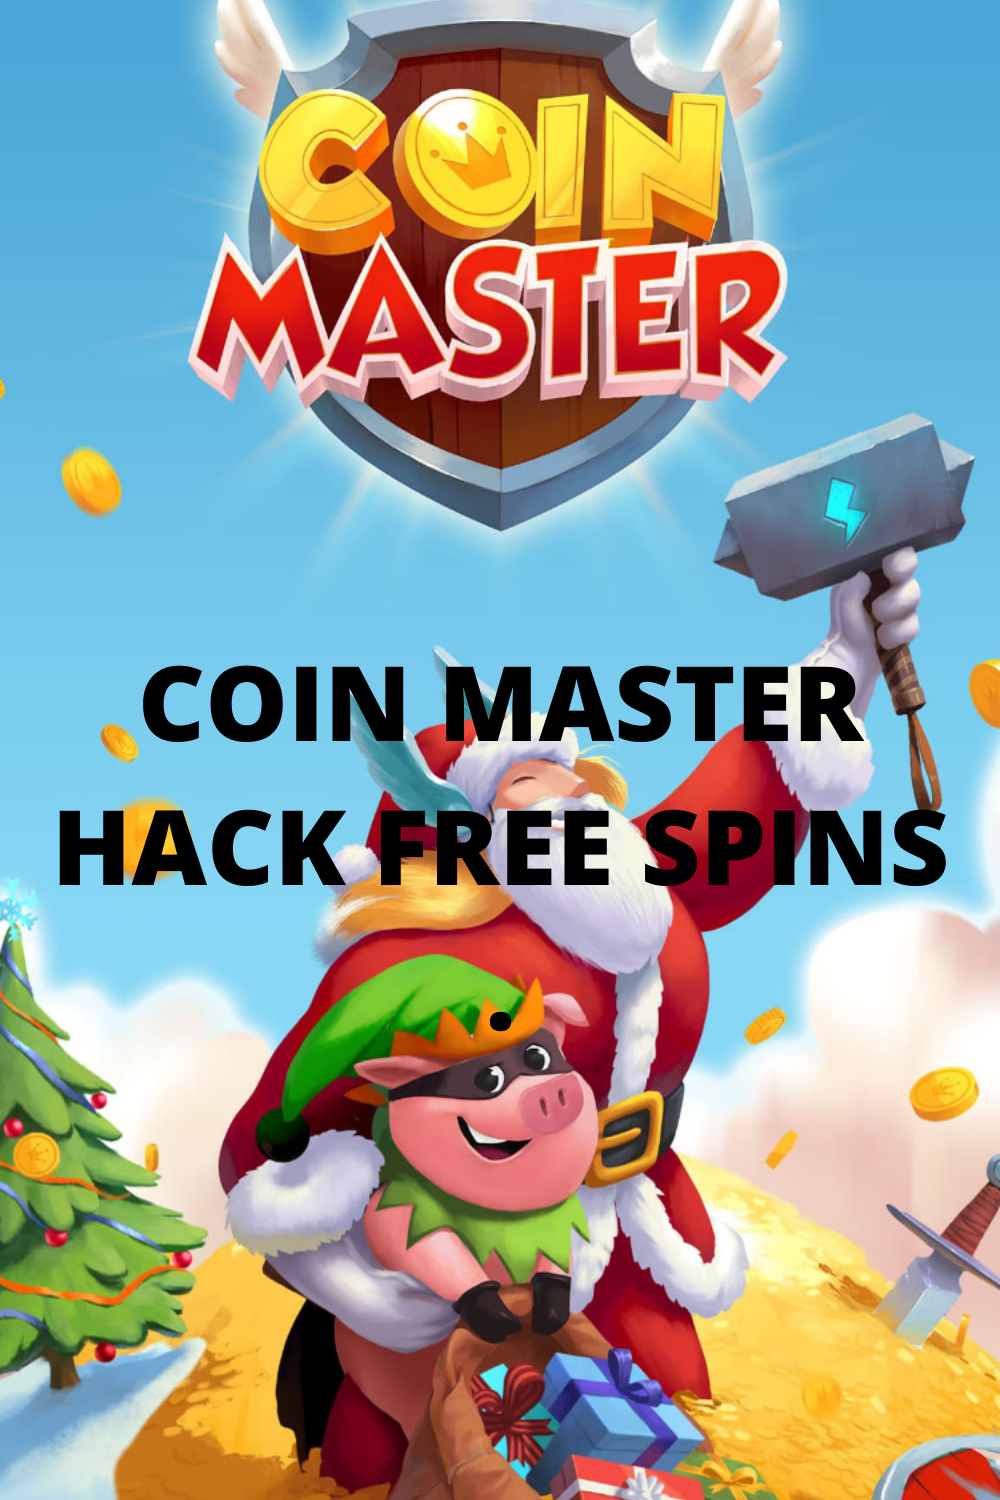 Pet Master Free Spins And Coins